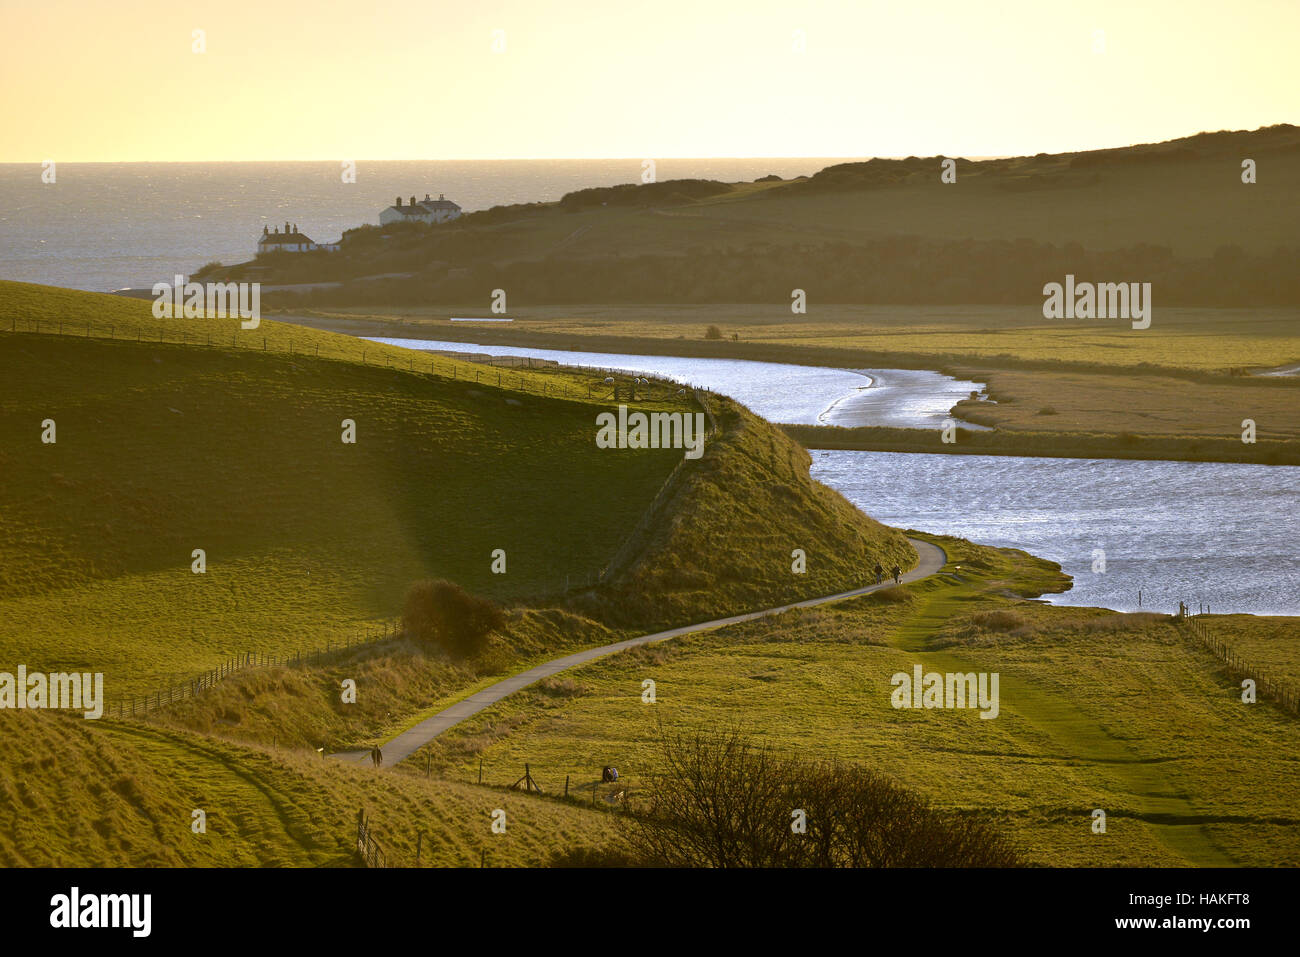 Cuckmere Haven river, cutting through the South Downs National Park, to meet the English Channel. - Stock Image